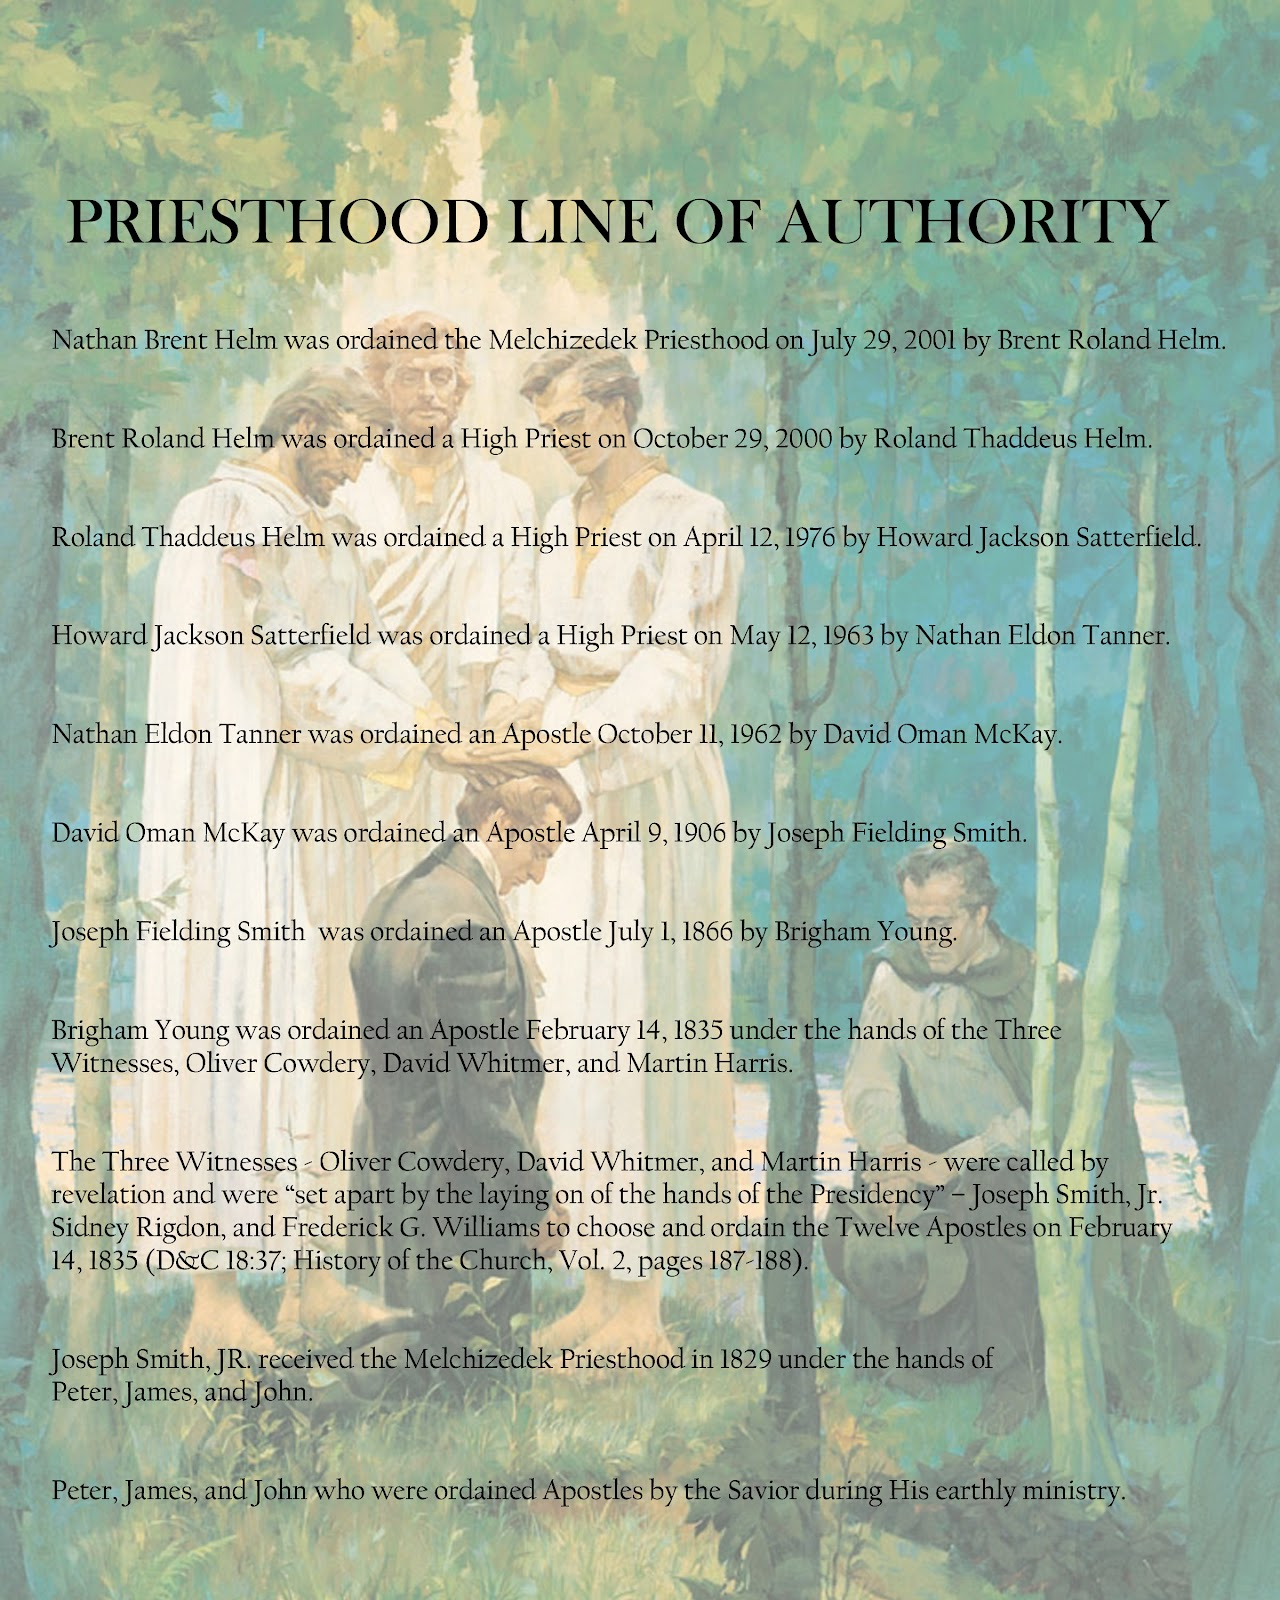 A Pocket full of LDS prints: Priesthood Line of Authority